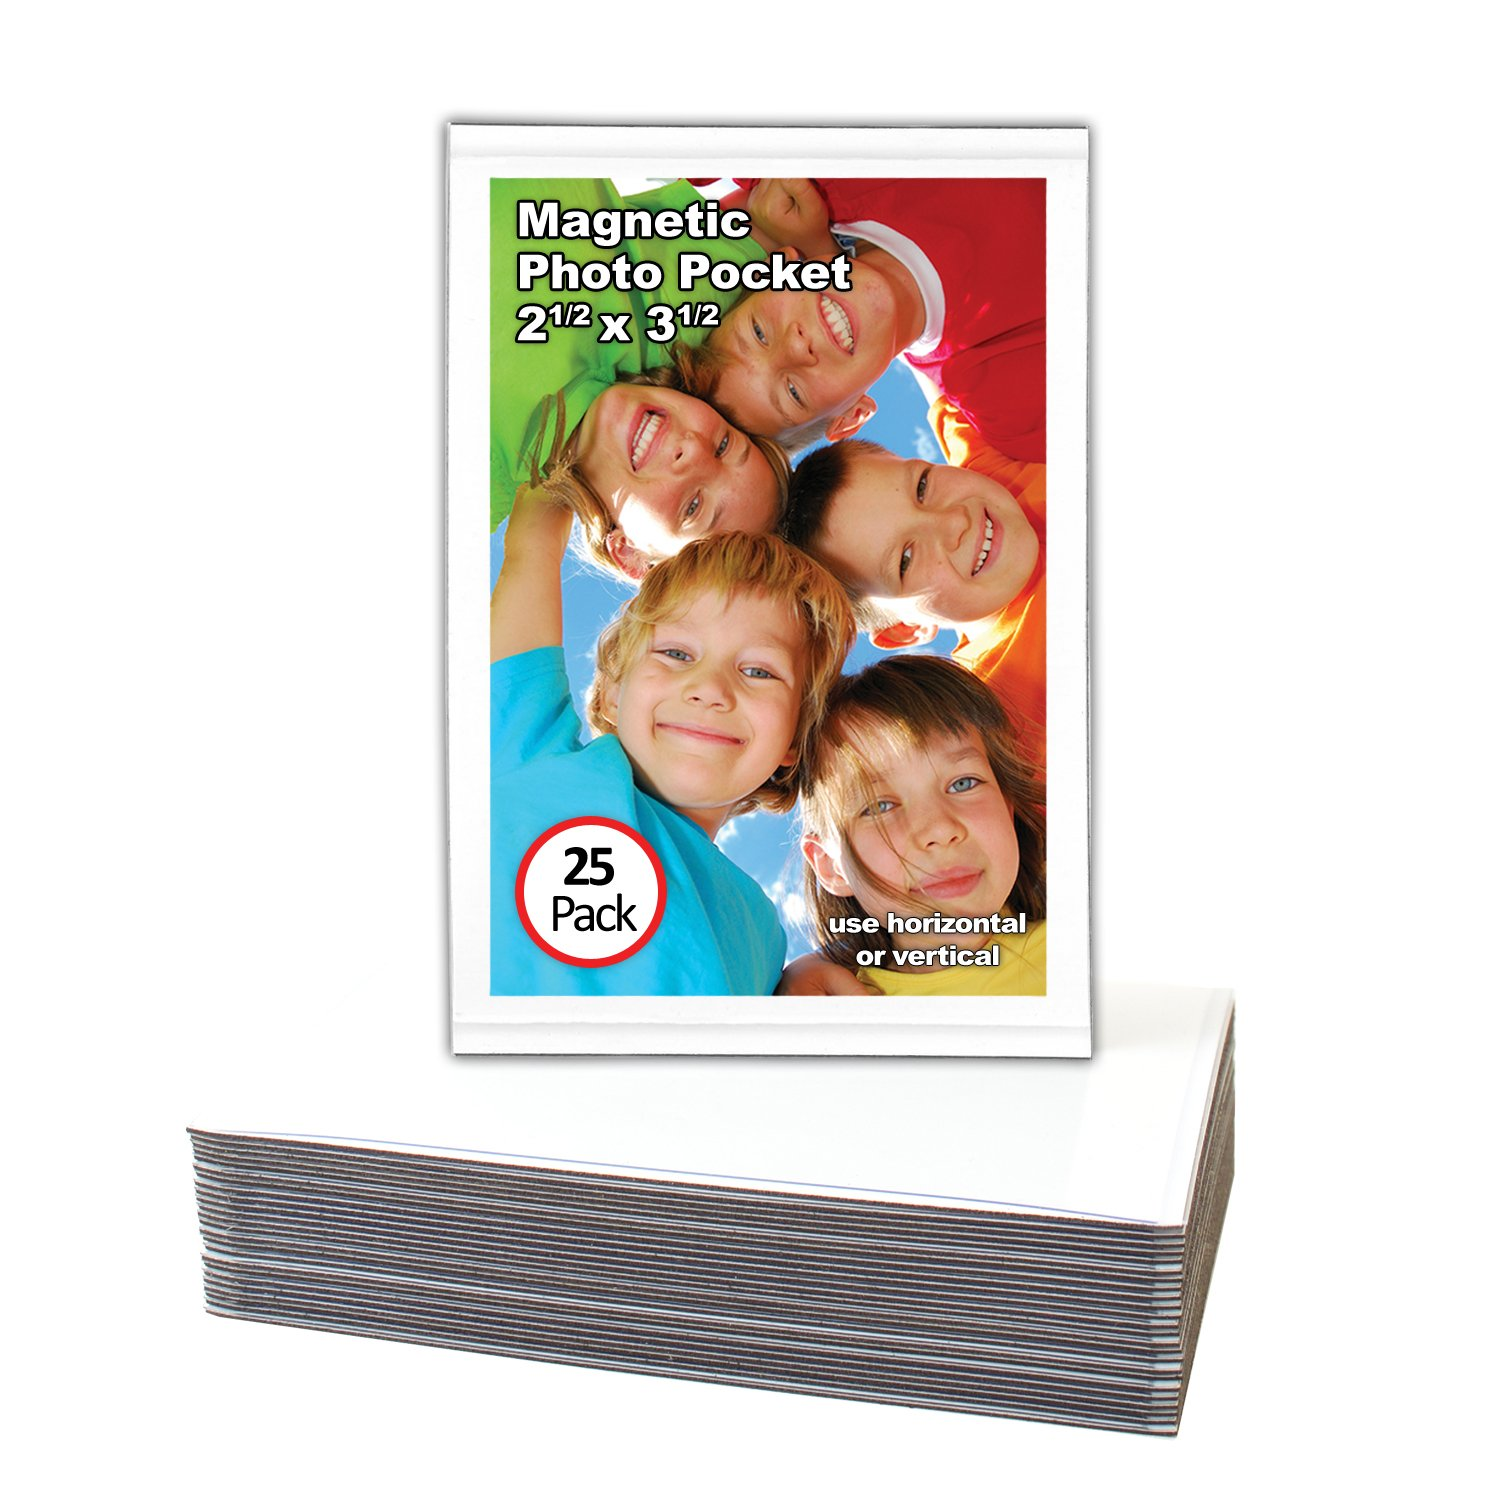 Magtech Magnetic Photo Pocket Picture Frame, White, Holds 2.5 x 3.5 Inches Photos, 25 Pack (12325) by Magtech